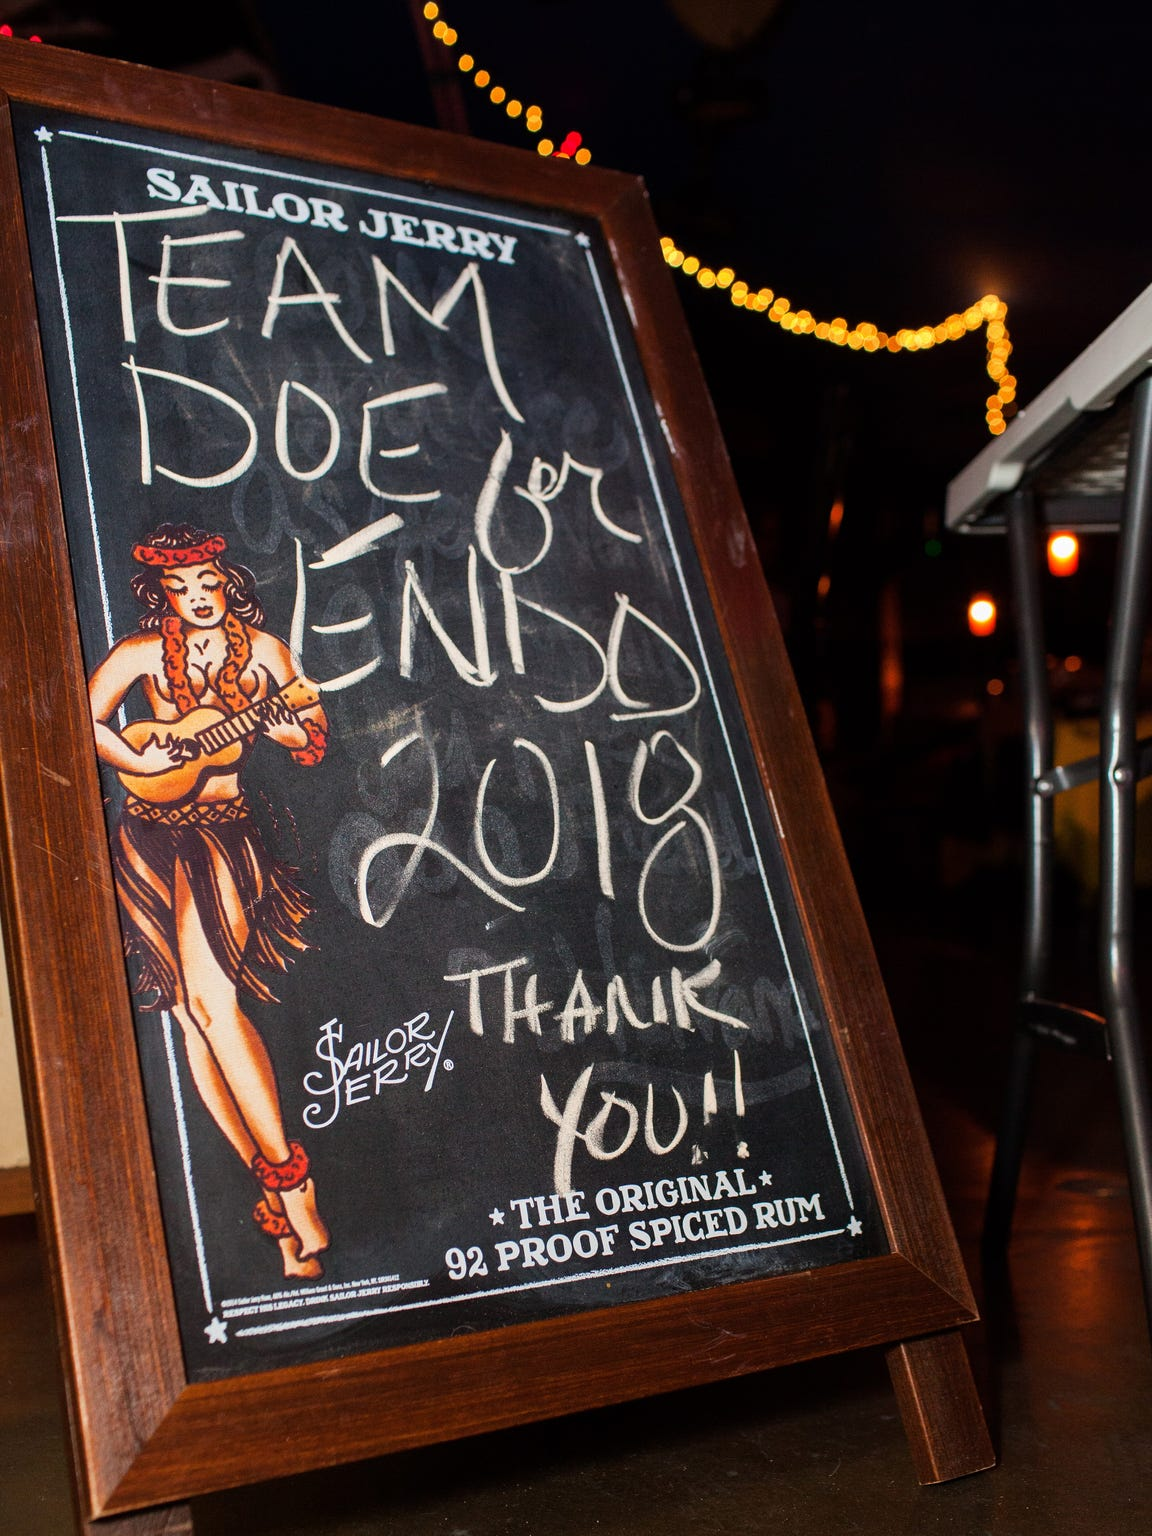 Party-goers are greeted by the Team Doe for Endo sign at the entrance of The Warehouse Bar on Saturday, Feb. 10.